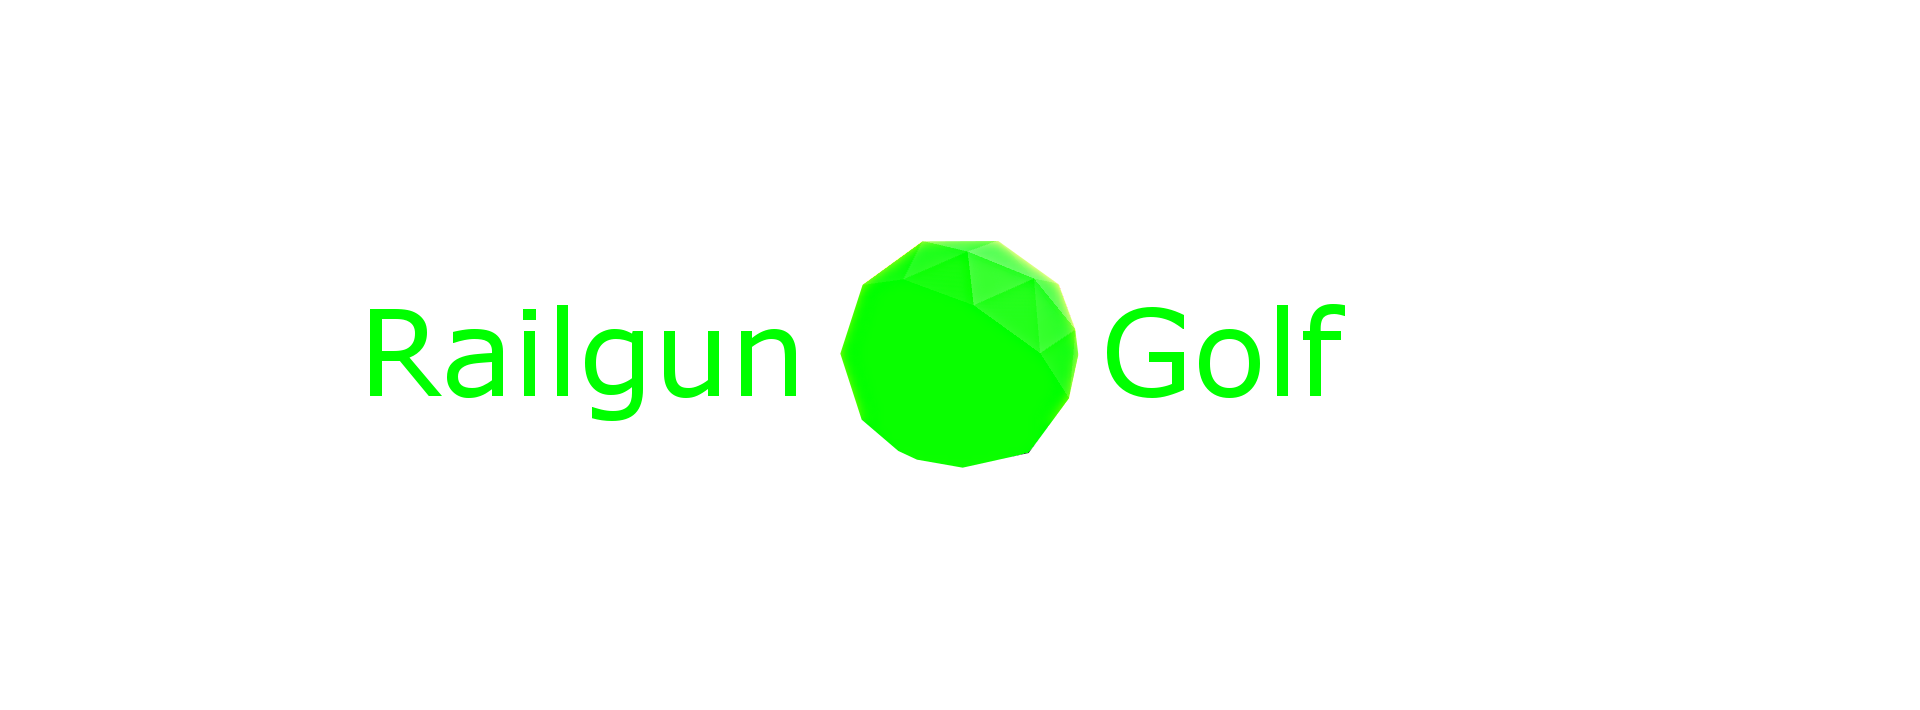 Railgun Golf